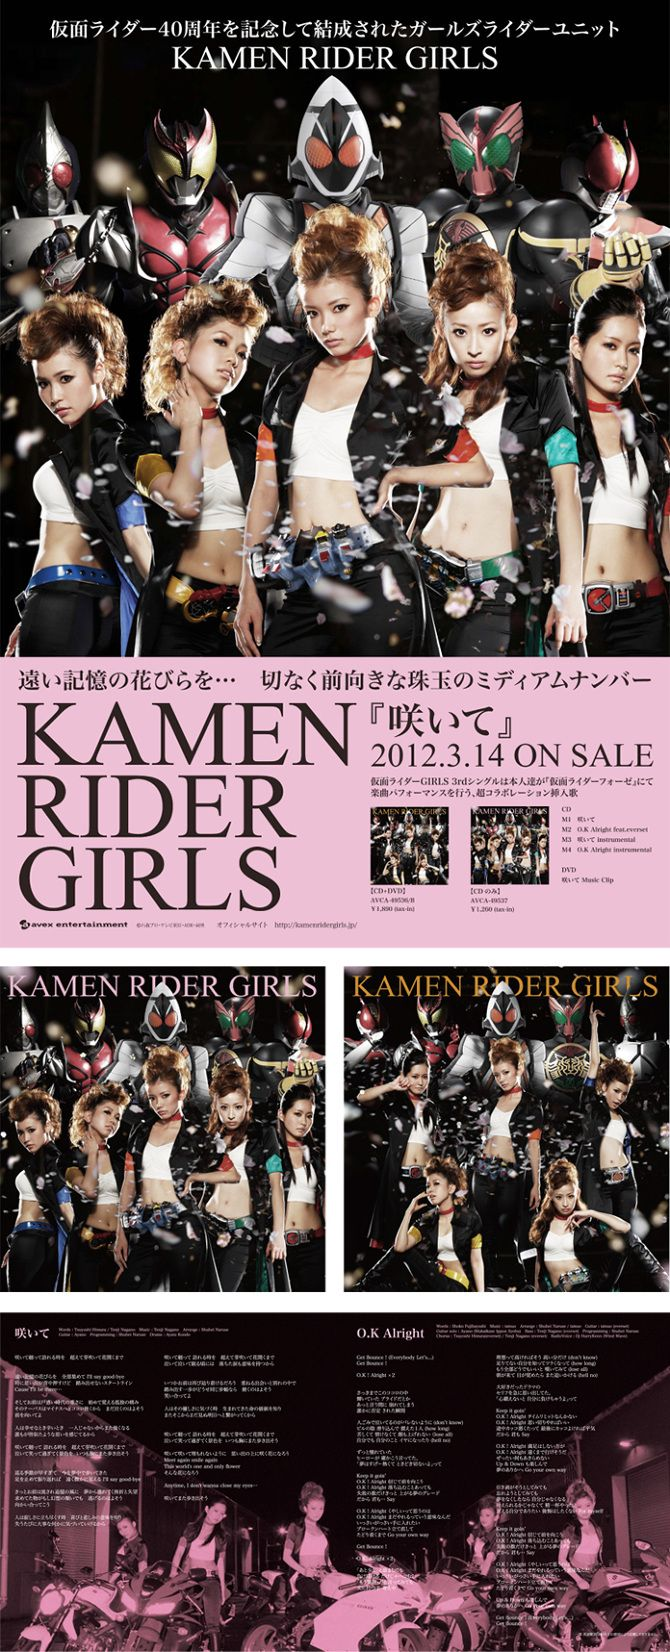 KAMEN RIDER GIRLS / 咲いて -     ~ photo by CANNO  http://www.pinterest.com/cannosan/cannos-works-photo-by-canno/